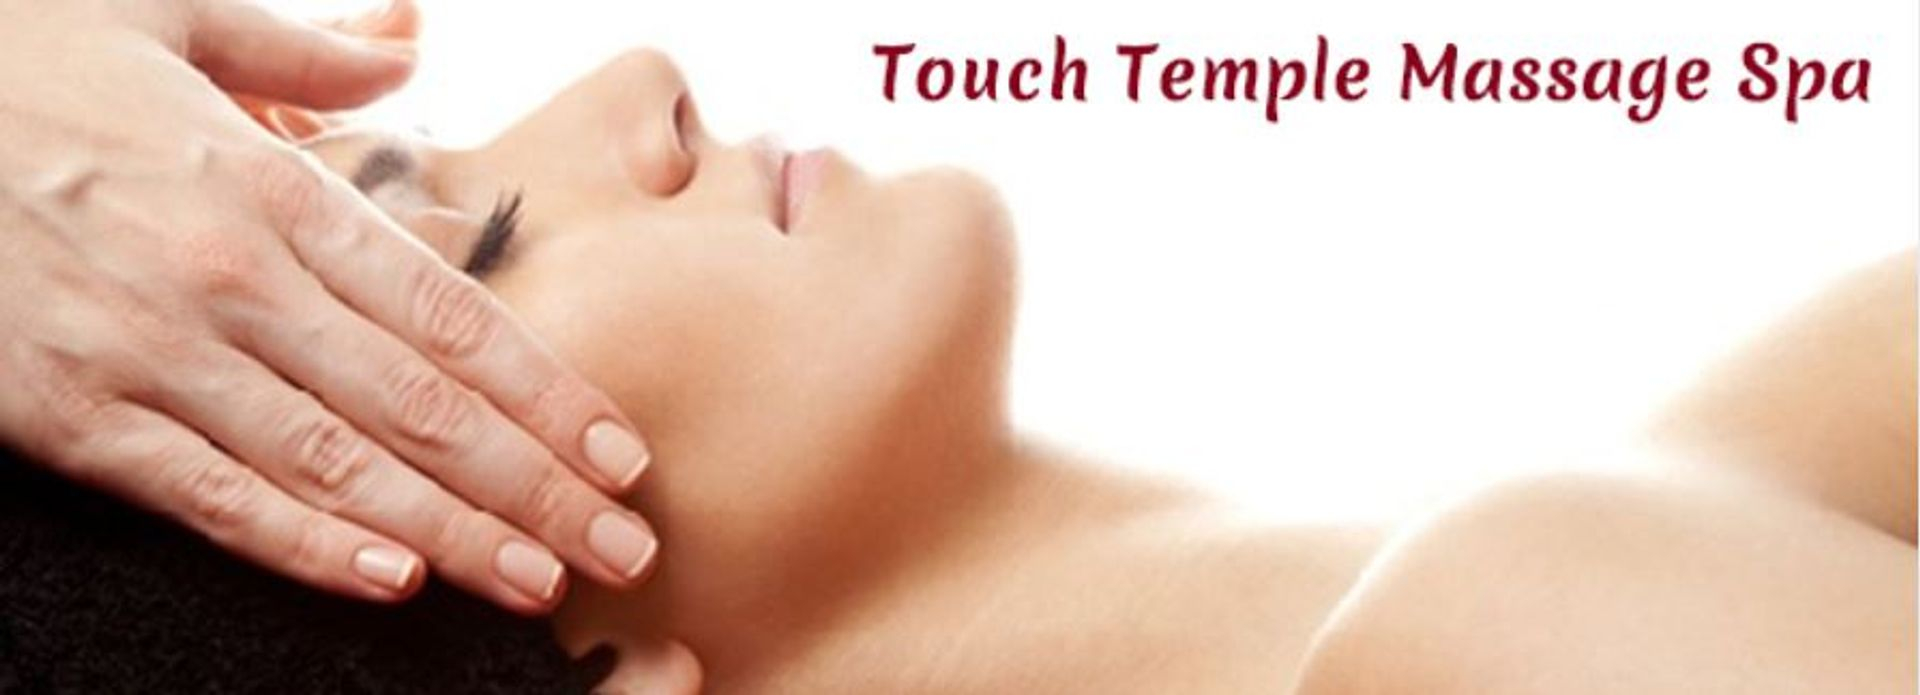 Touch Temple Massage Spa